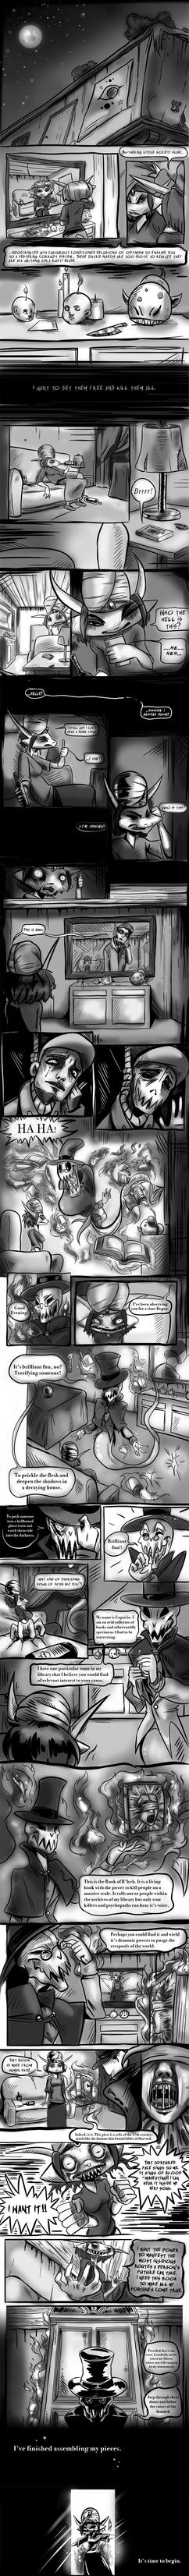 The Haunted Library Regan Audition Page 2 by Neriah